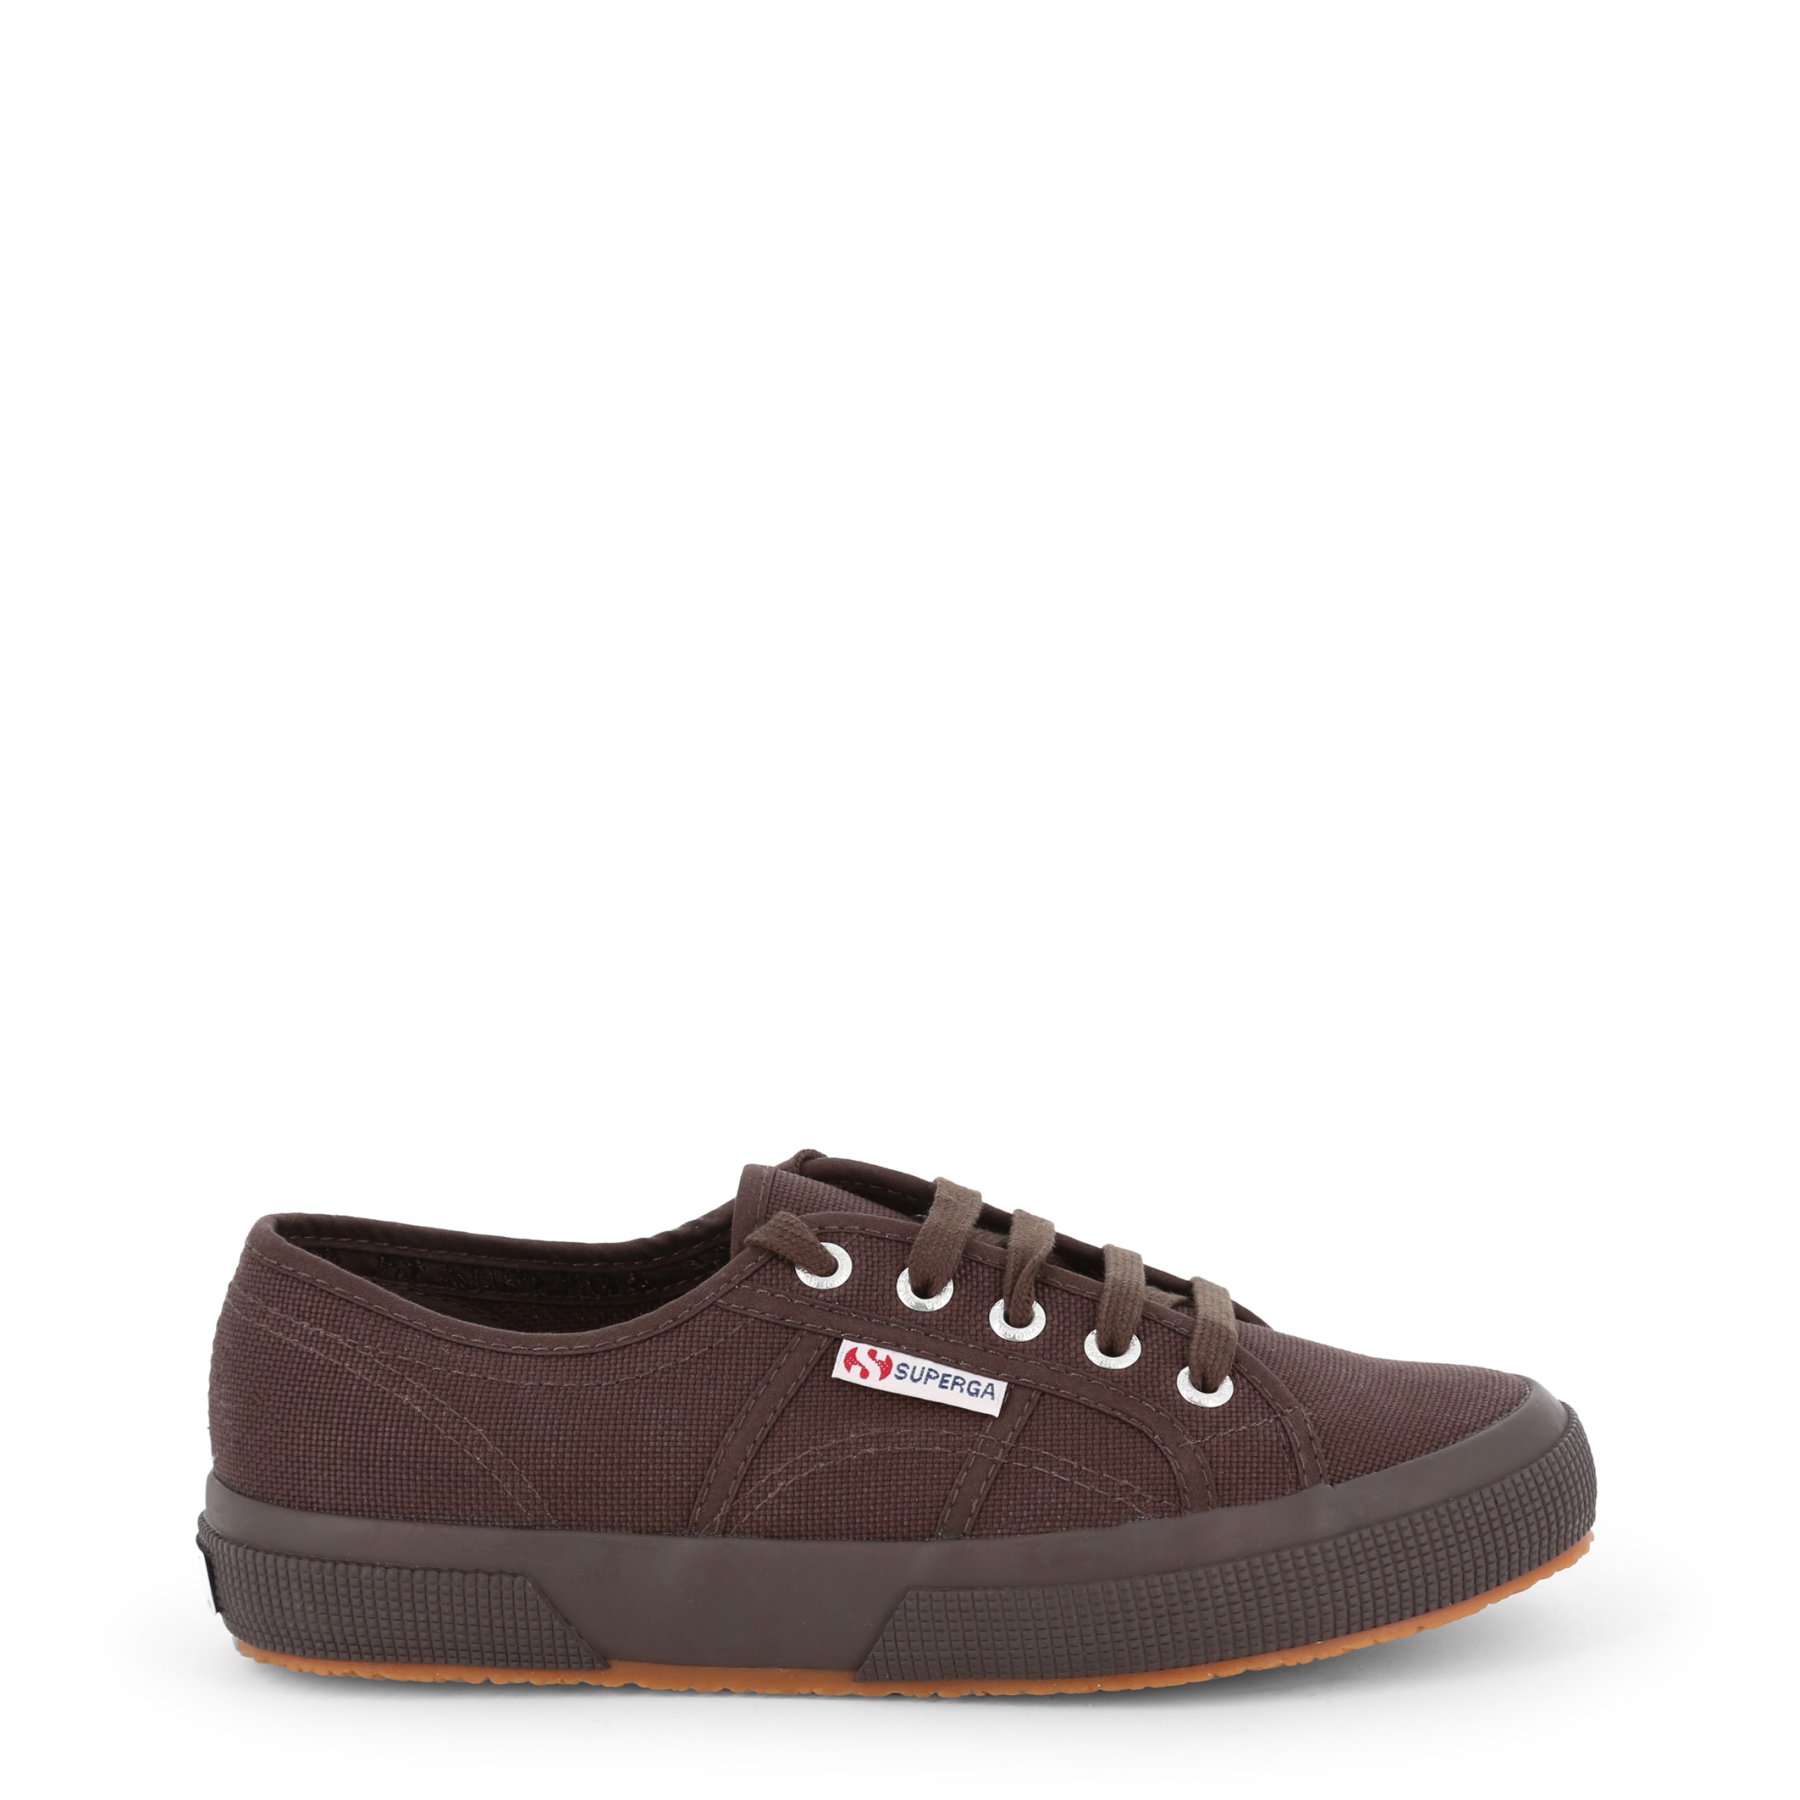 Women's Sports Shoes Casual Woman ORIGINAL Brand Superga - 2750-COTU-CLASSIC